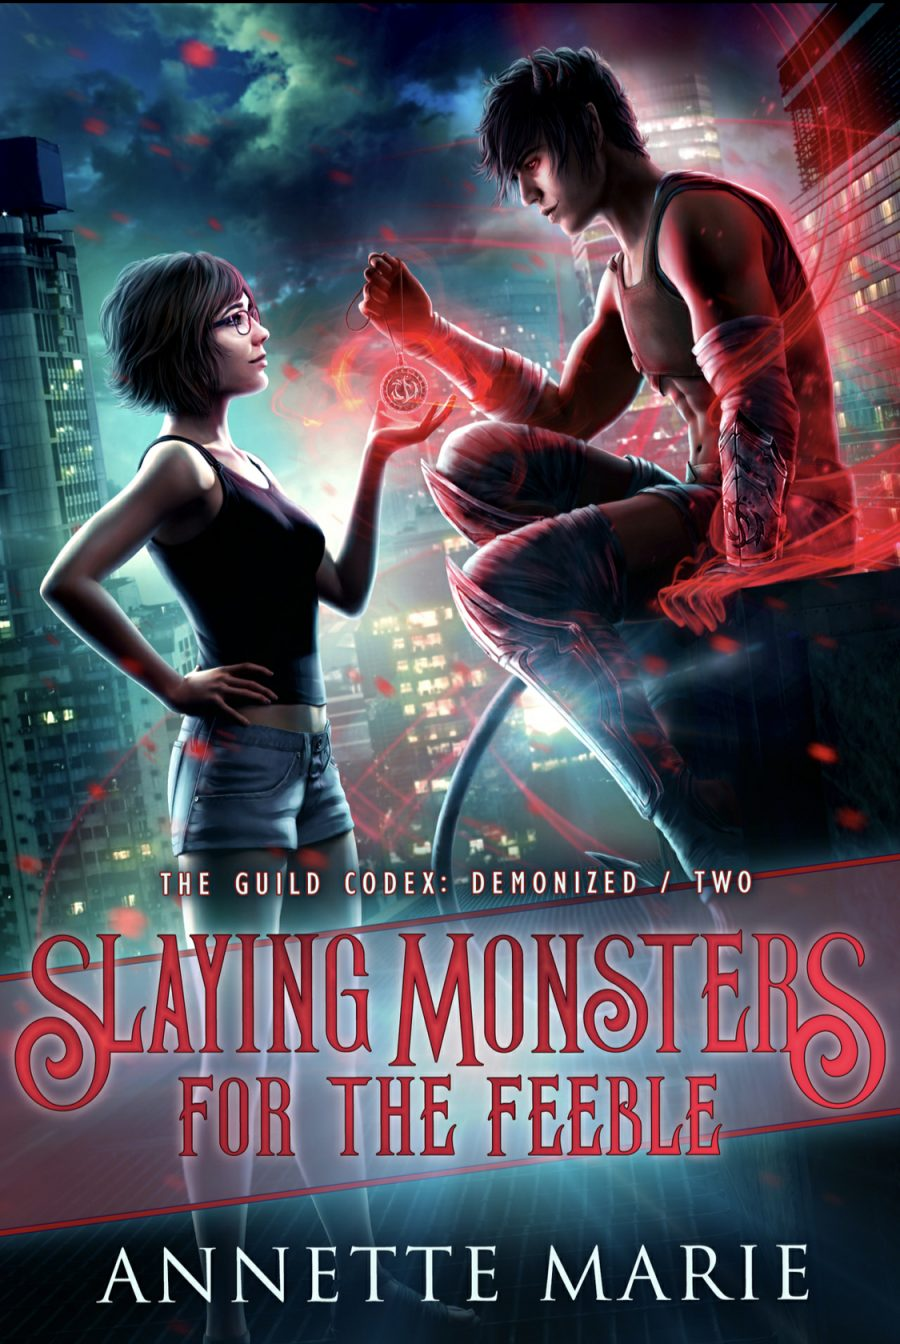 Slaying Monsters for the Feeble by Annette Marie - A Book Review #BookReview #UrbanFantasy #WouldRecommend #Book2 #GuildCodex #KindleUnlimited #KU